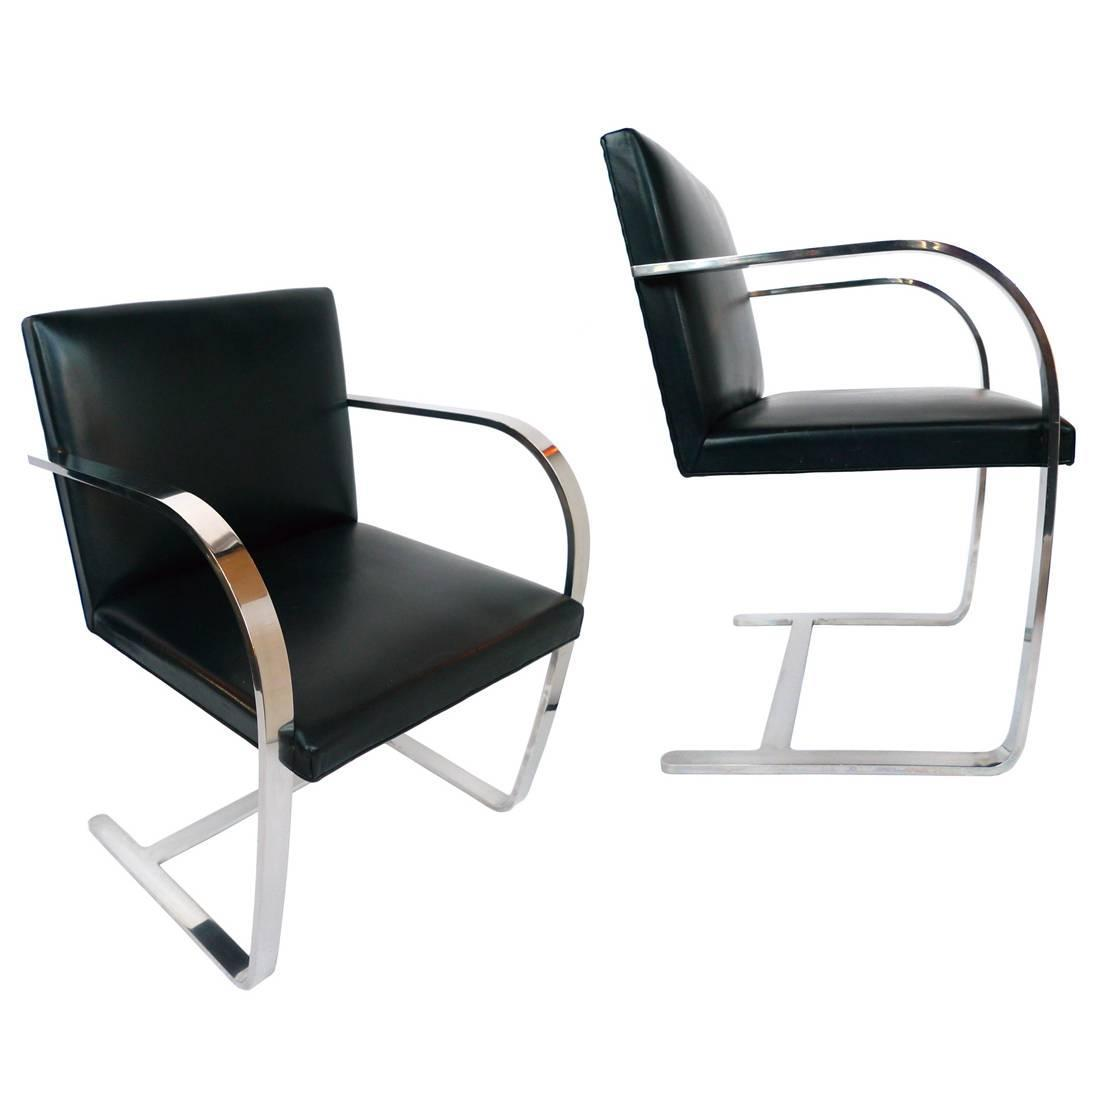 ludwig mies van der rohe brno chairs by knoll a pair for. Black Bedroom Furniture Sets. Home Design Ideas